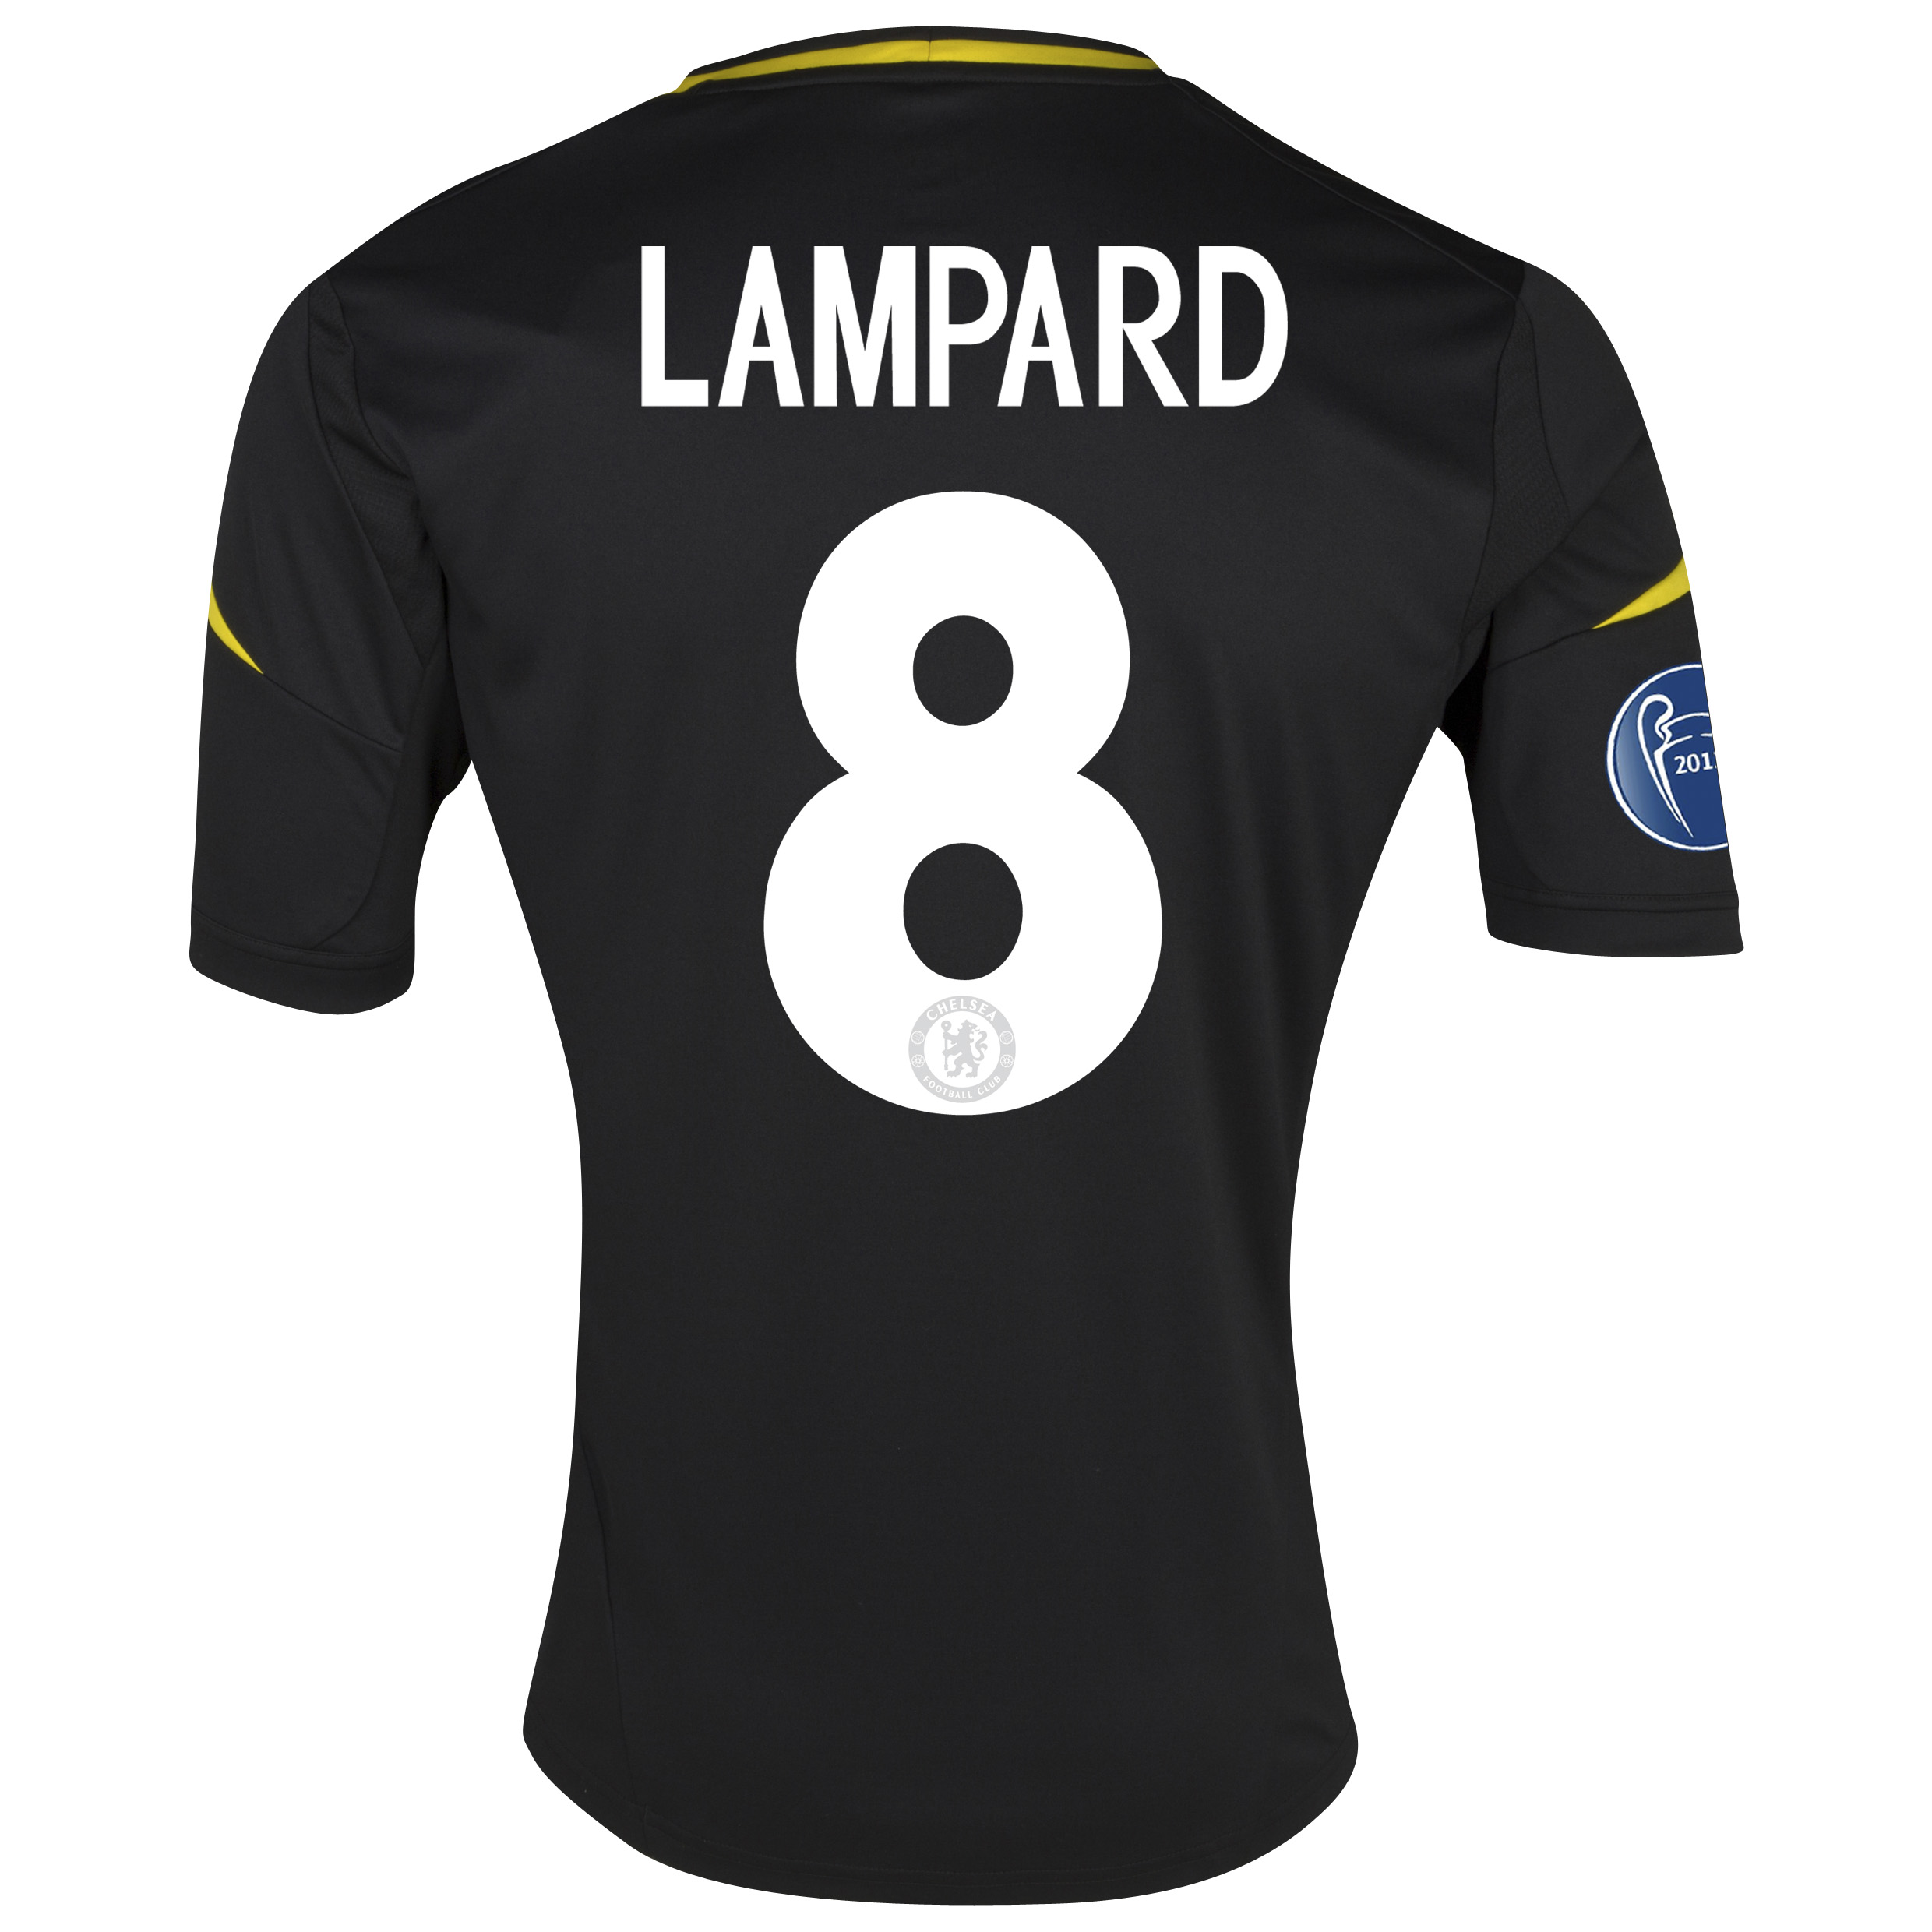 Chelsea UEFA Champions League Third Shirt 2012/13 with Lampard 8 printing